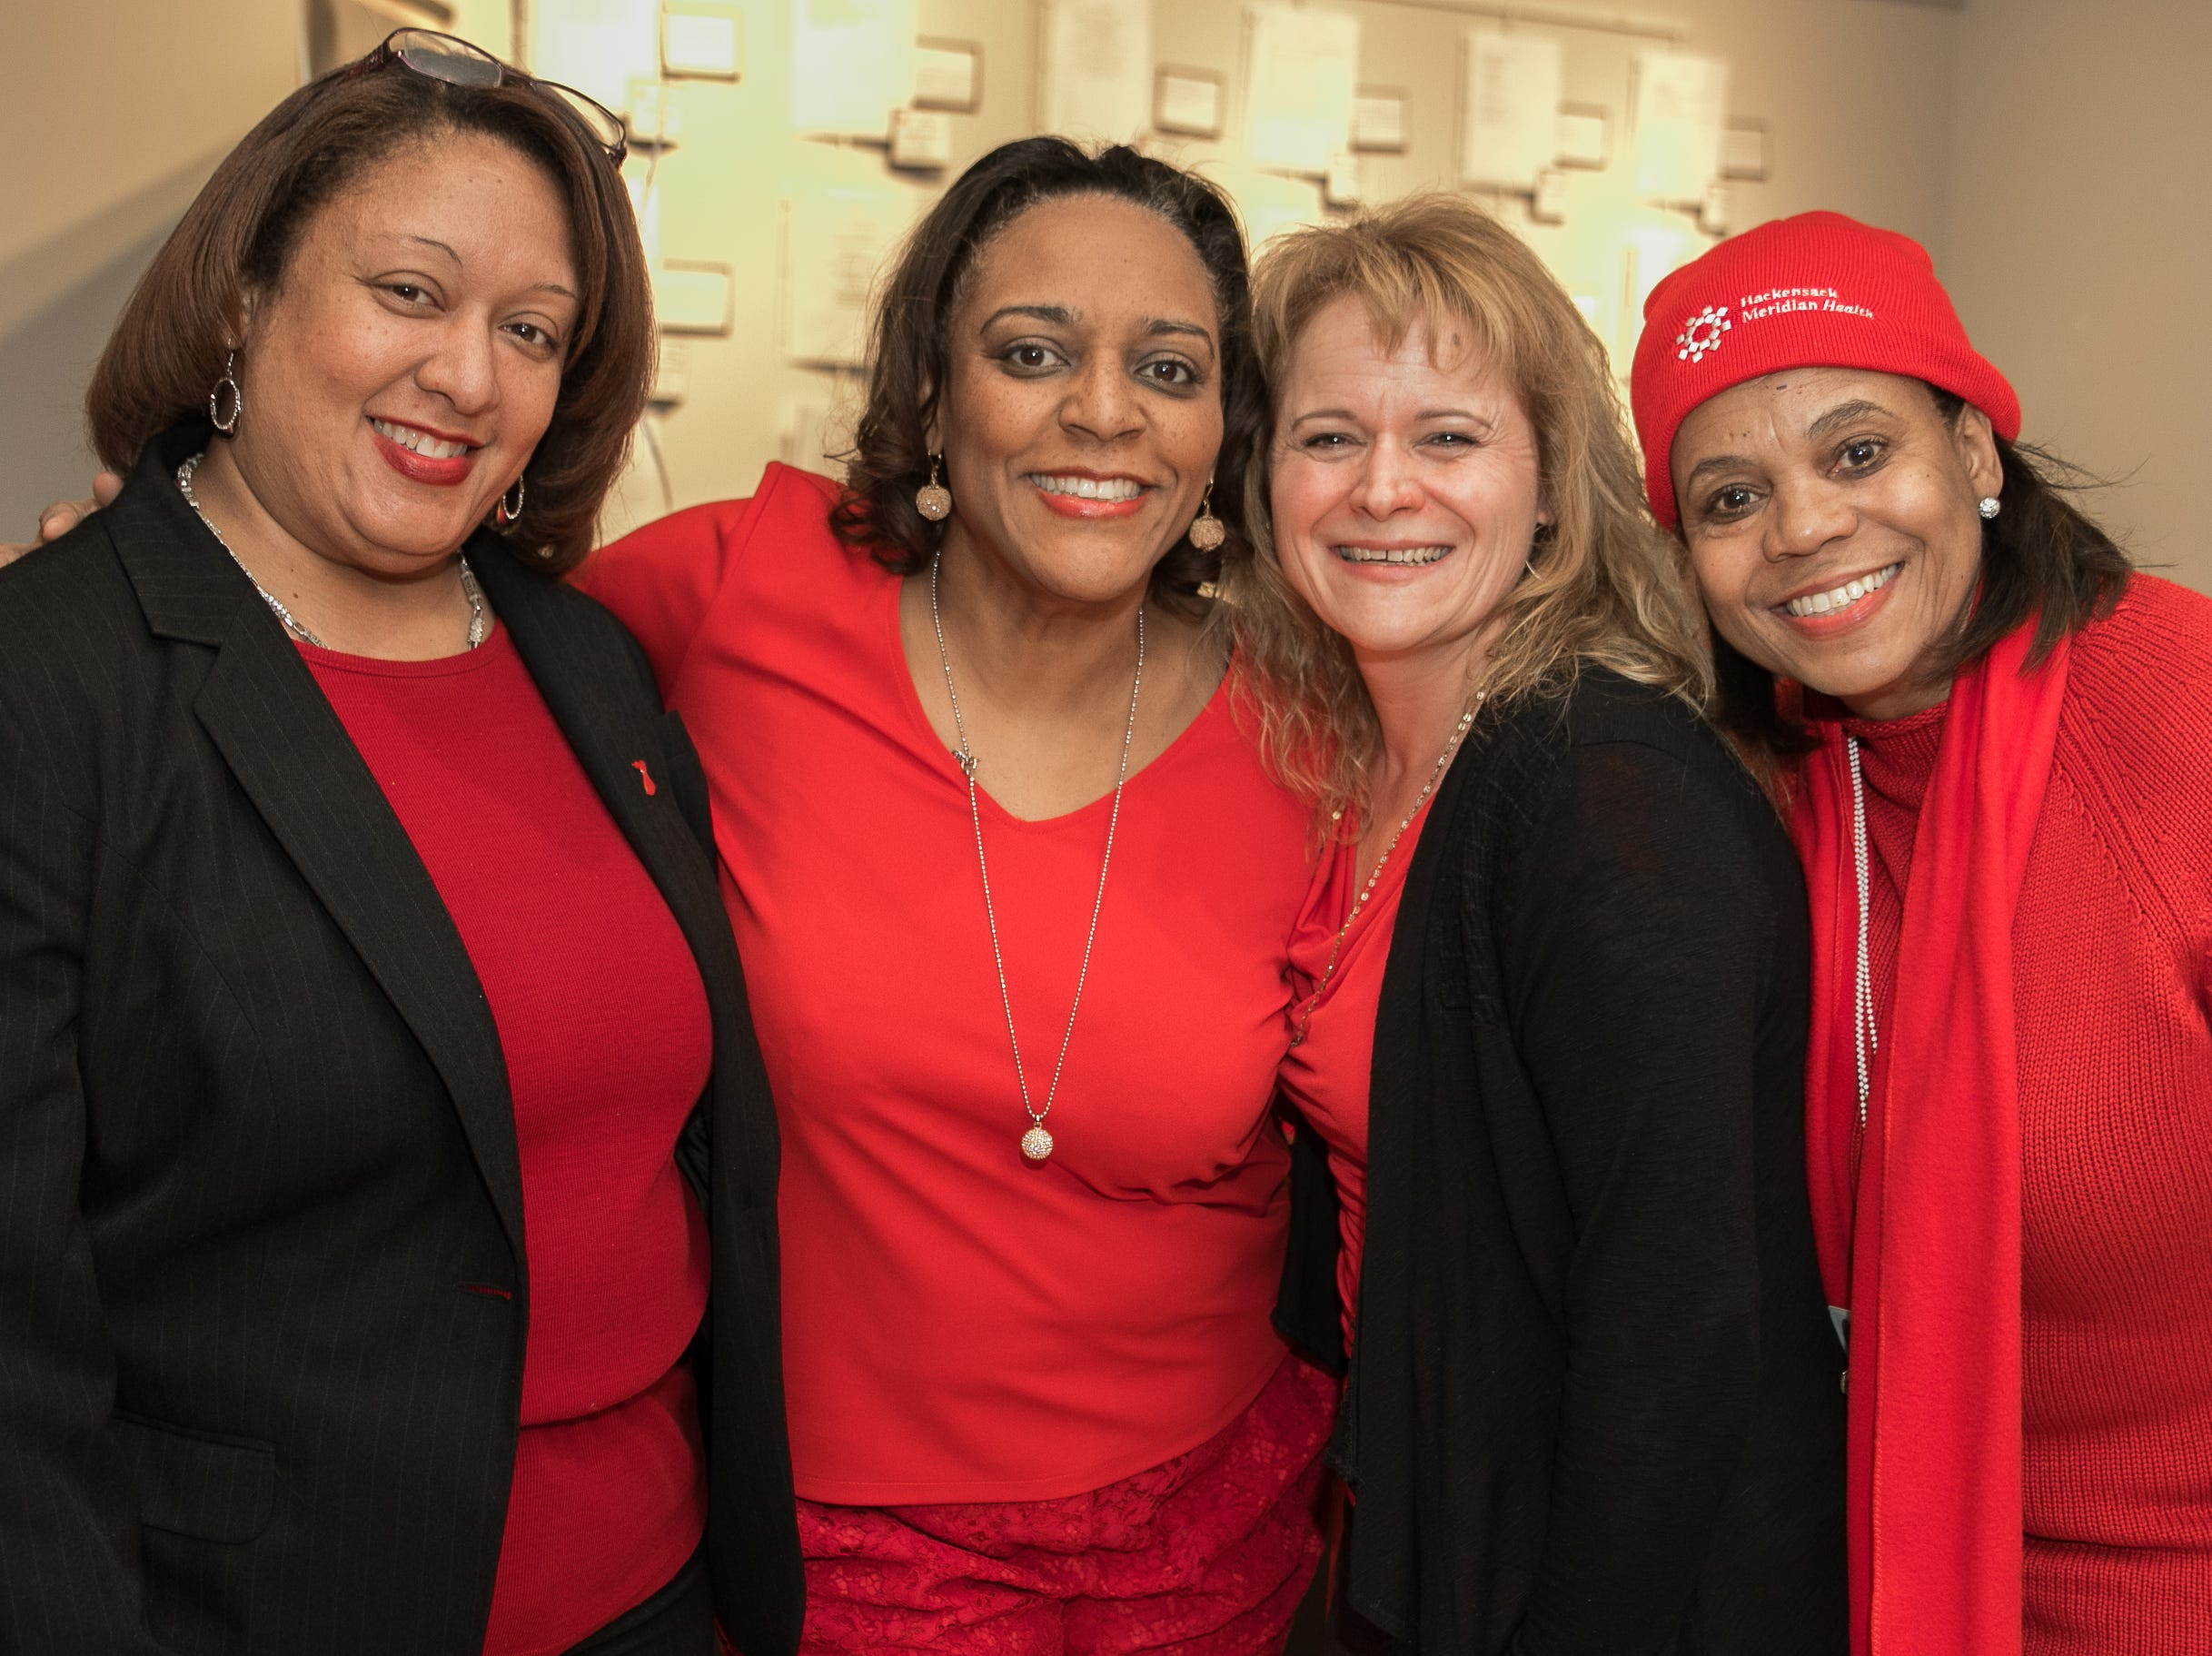 Rev. Tami Henry, Dr. Traci Vurgess, Carlene Gordon, Dr. Darlene Cox. The National Coalition of Black Women of Bergen and Passaic Counties held its annual Heart Healthy Go Red Event at The Hackensack Performing Arts Theater. 02/01/2019